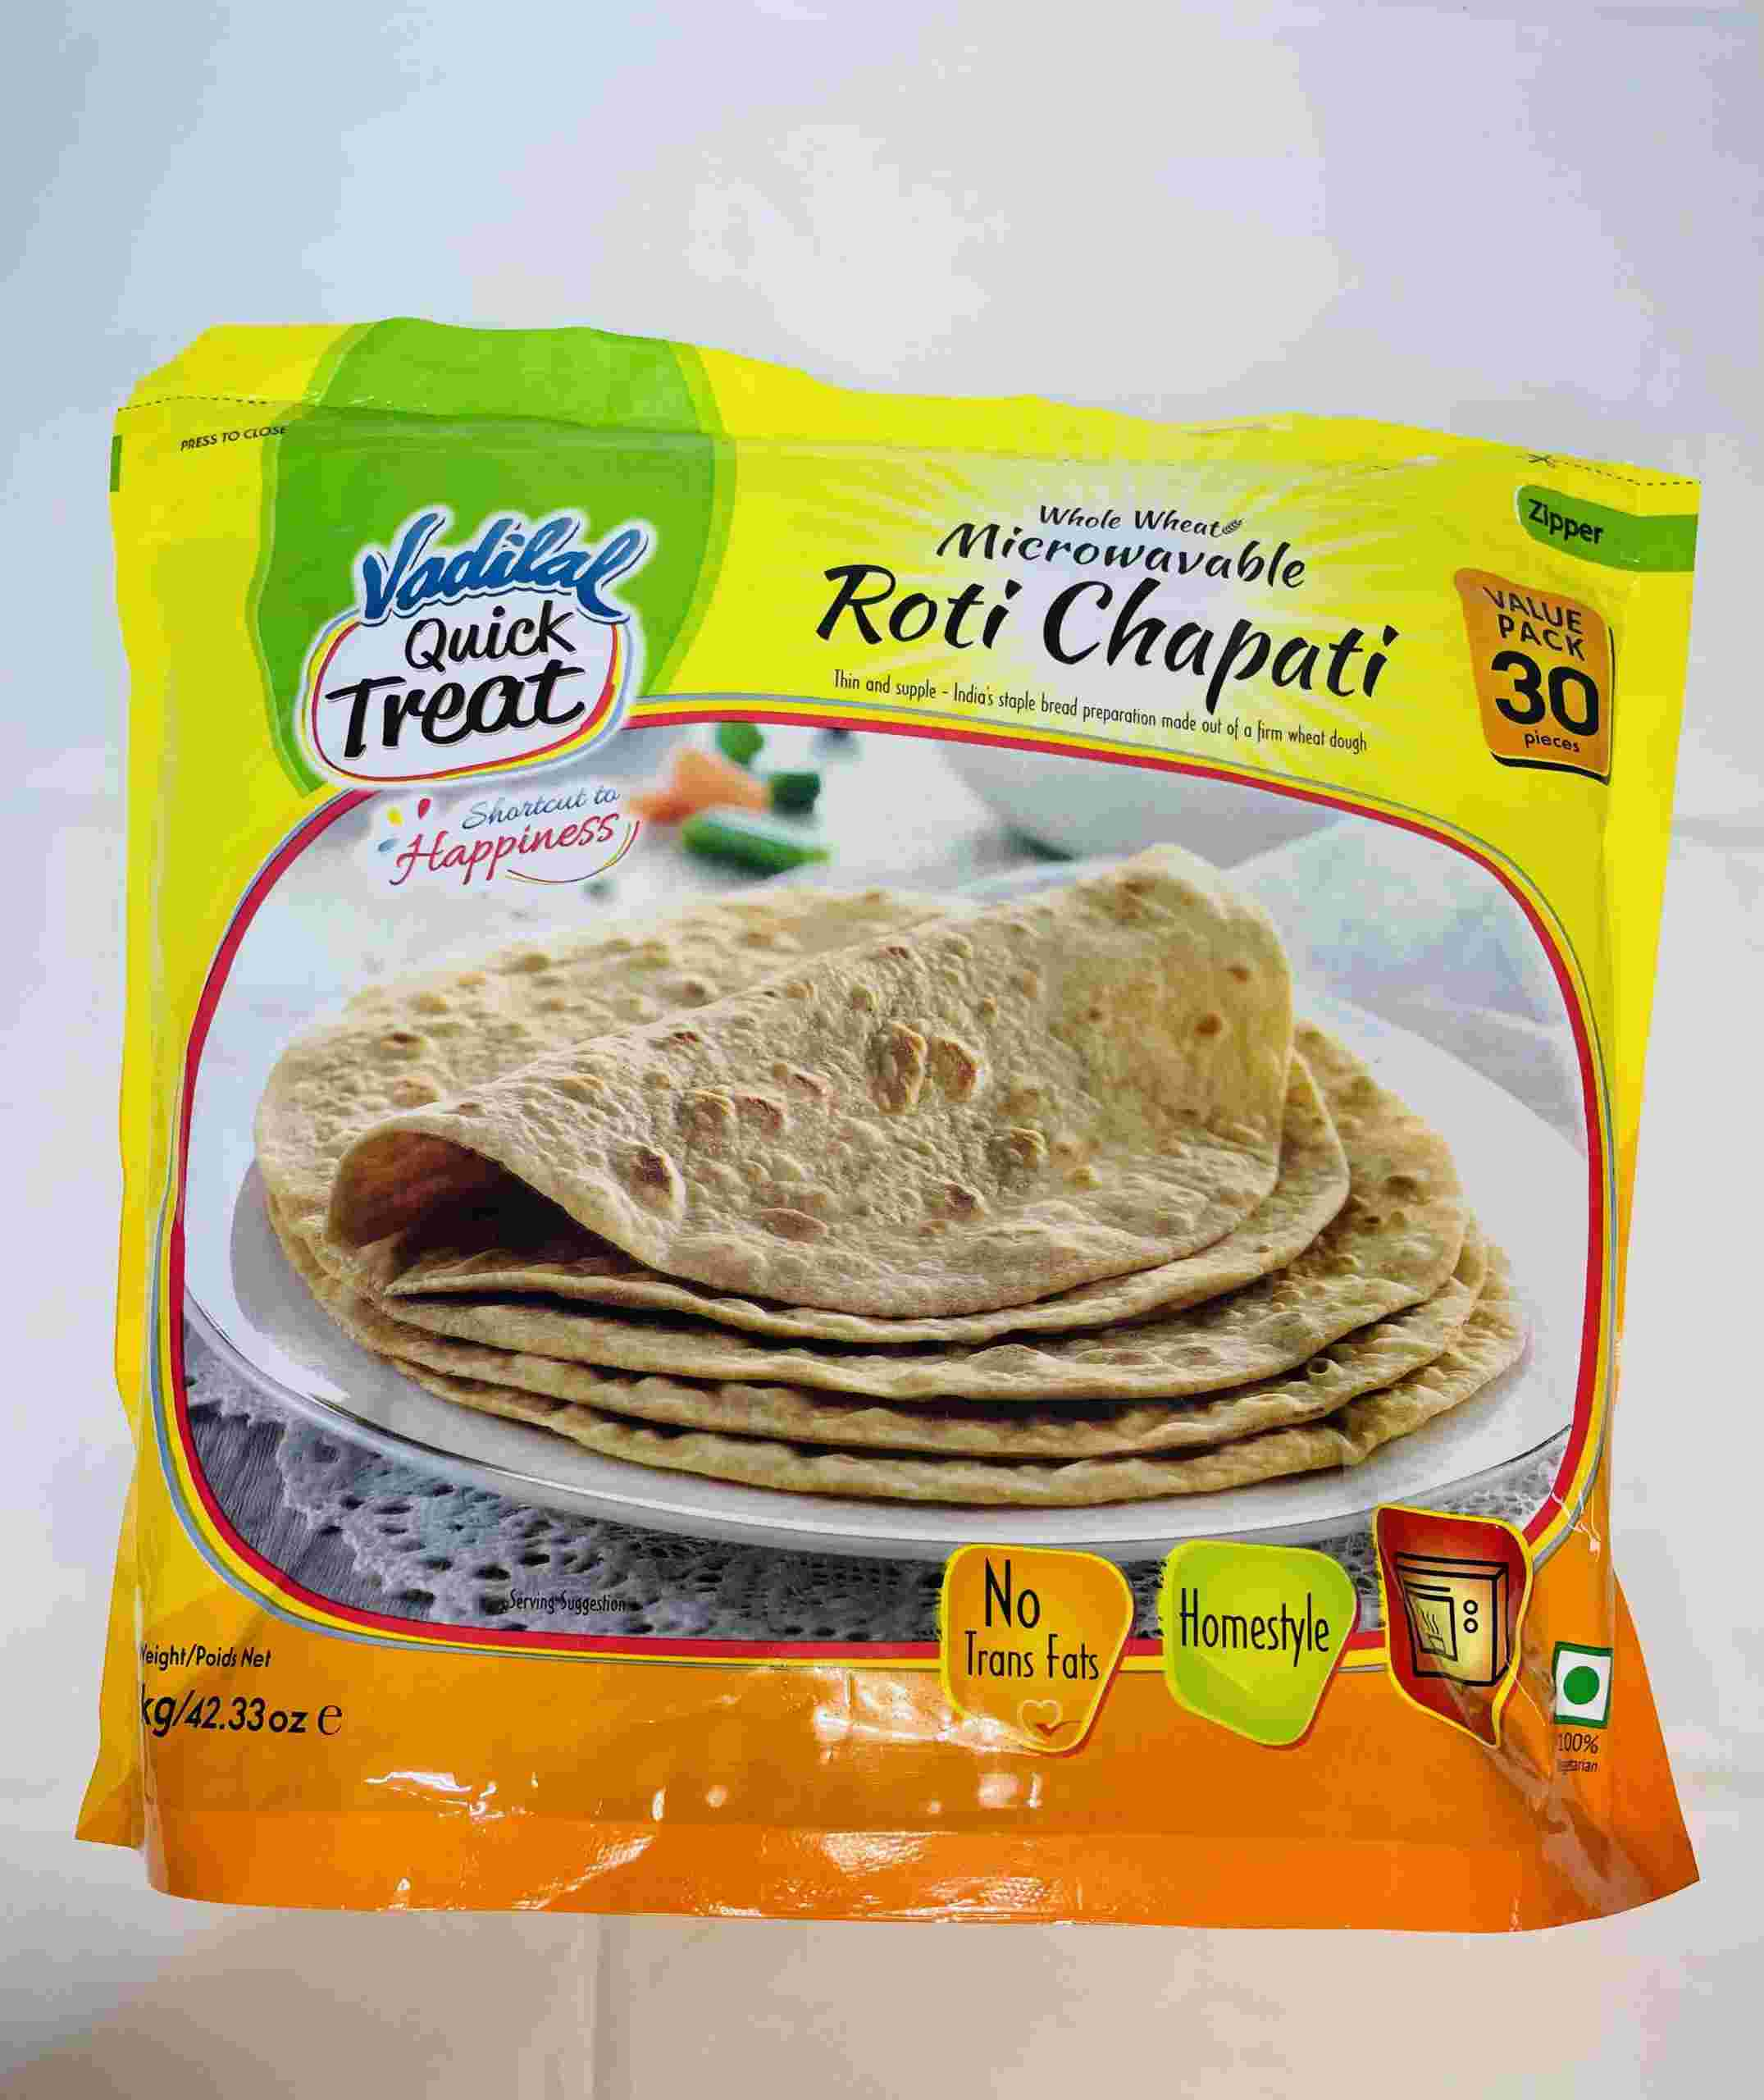 Vadilal Whole Wheat Microwavable Roti 30 Pices